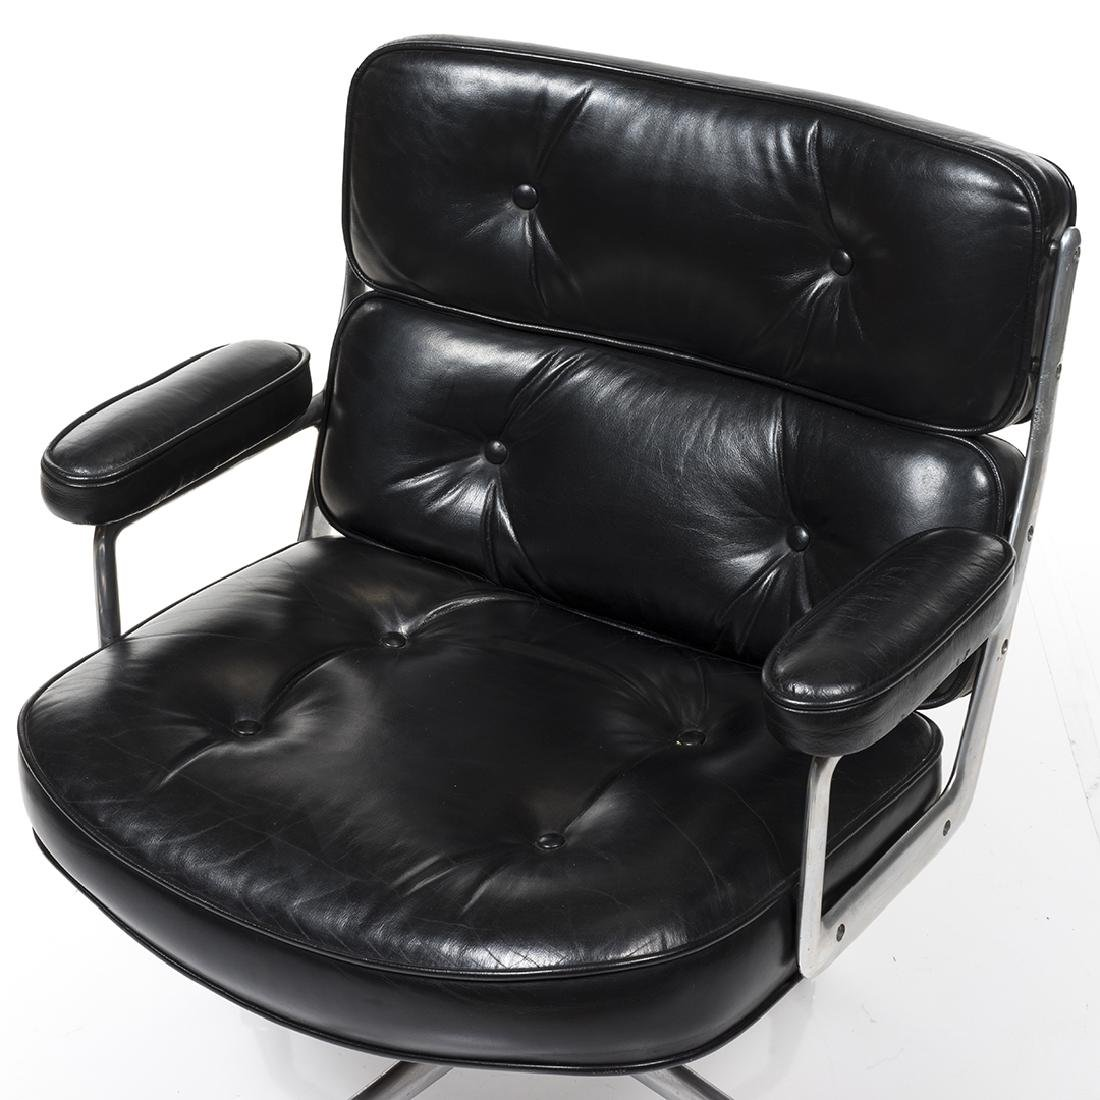 Charles Eames Time-Life Lobby Chair - 7